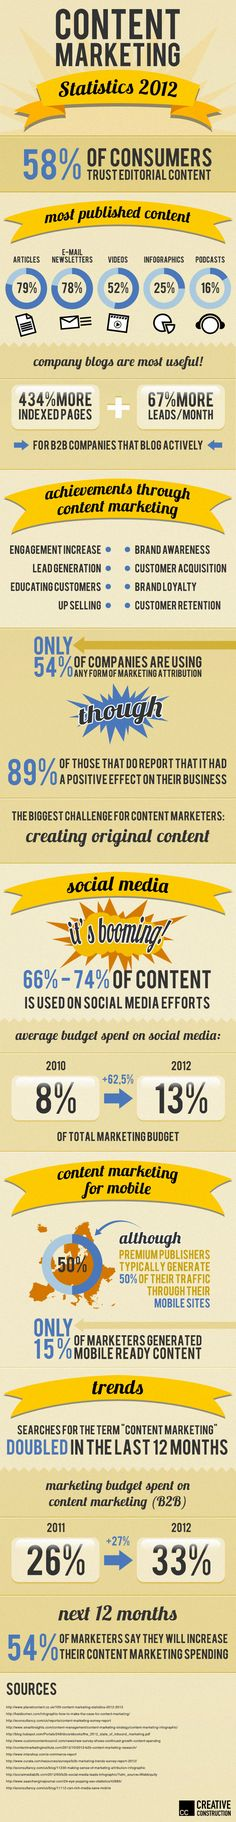 #ContentMarketing Statistics 2012